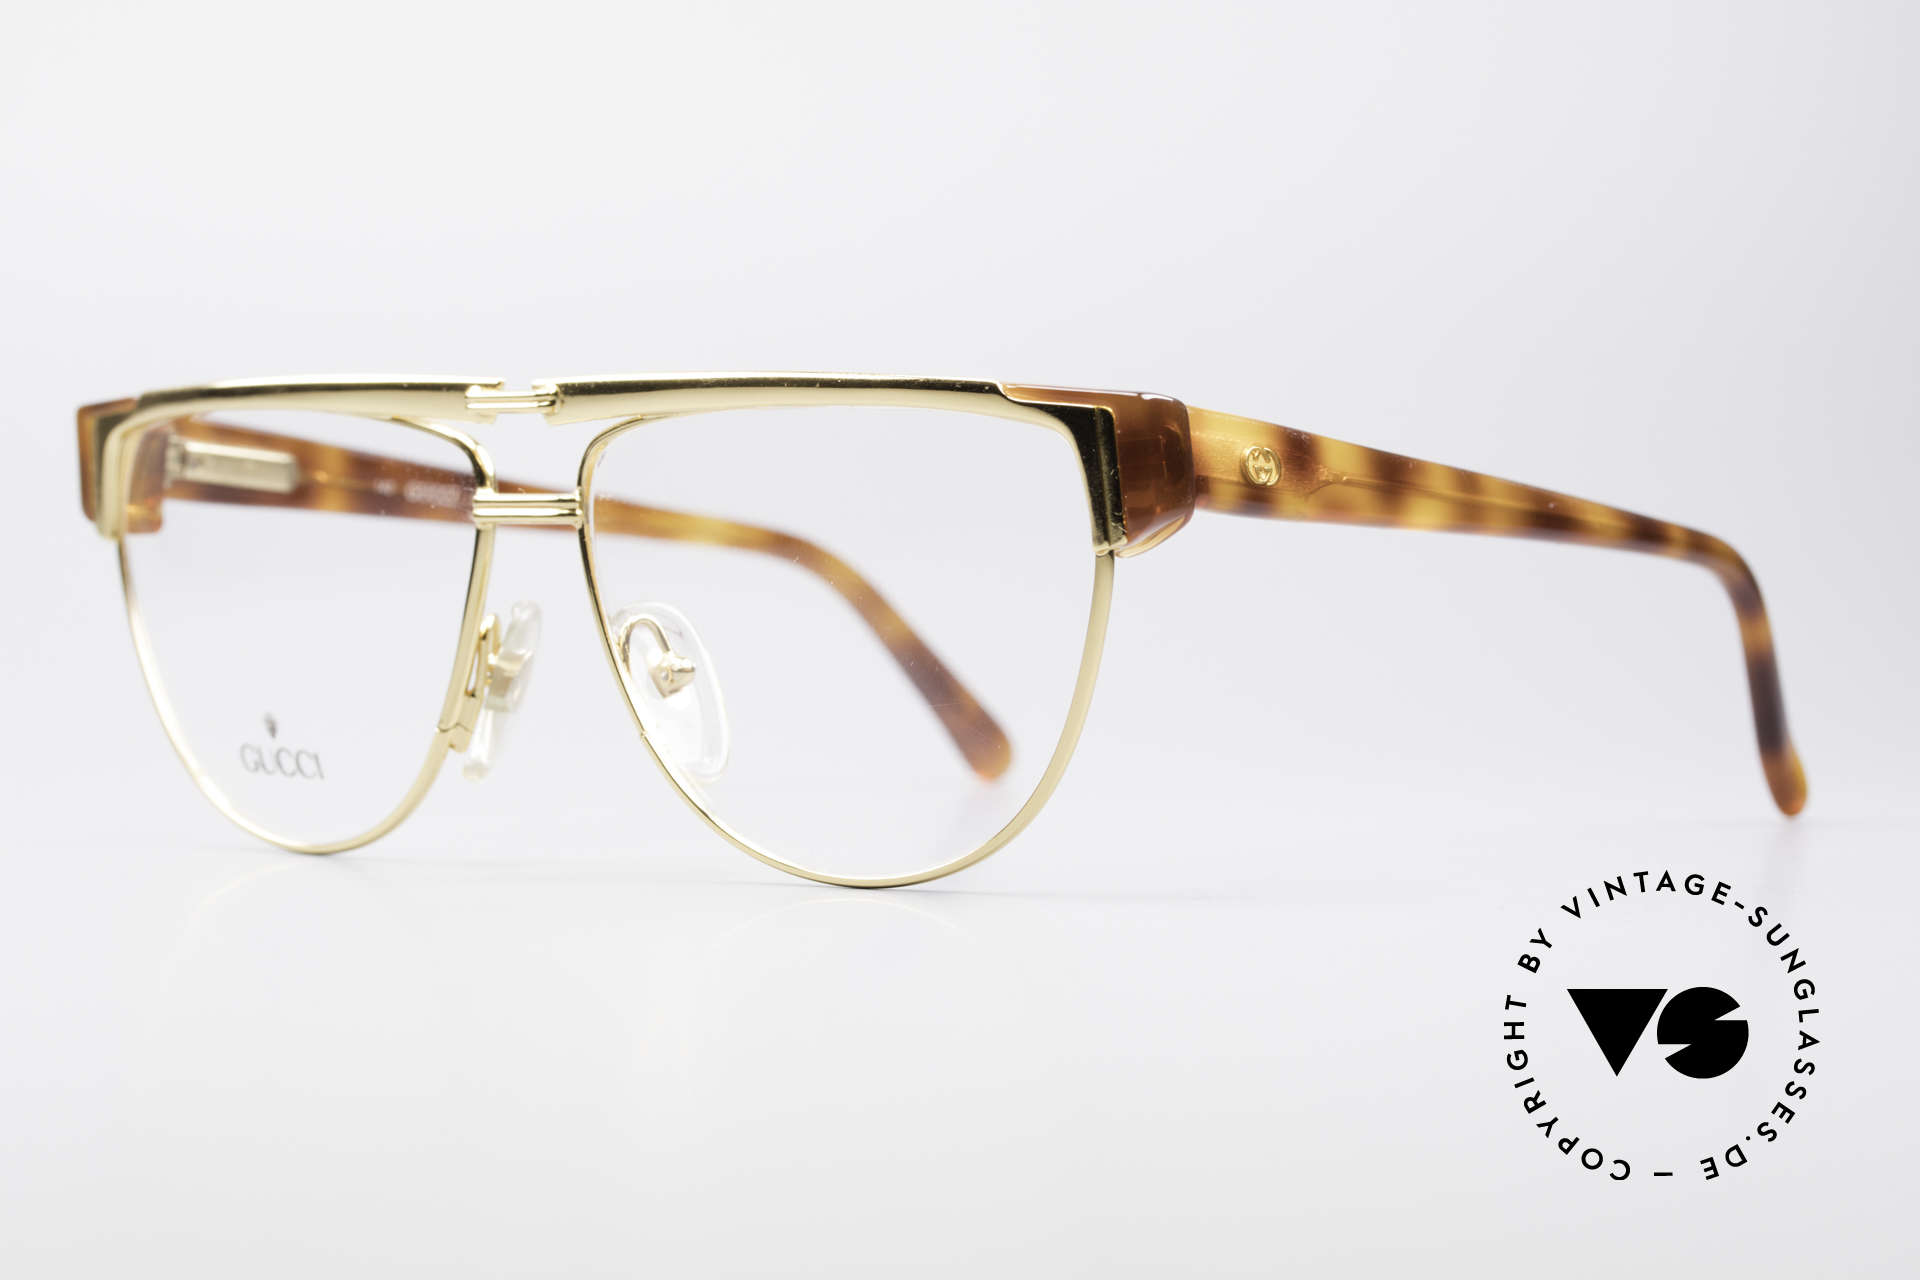 Gucci 2320 Luxury Designer Glasses 80's, a truly rare masterpiece of the late 1980's from Italy, Made for Men and Women